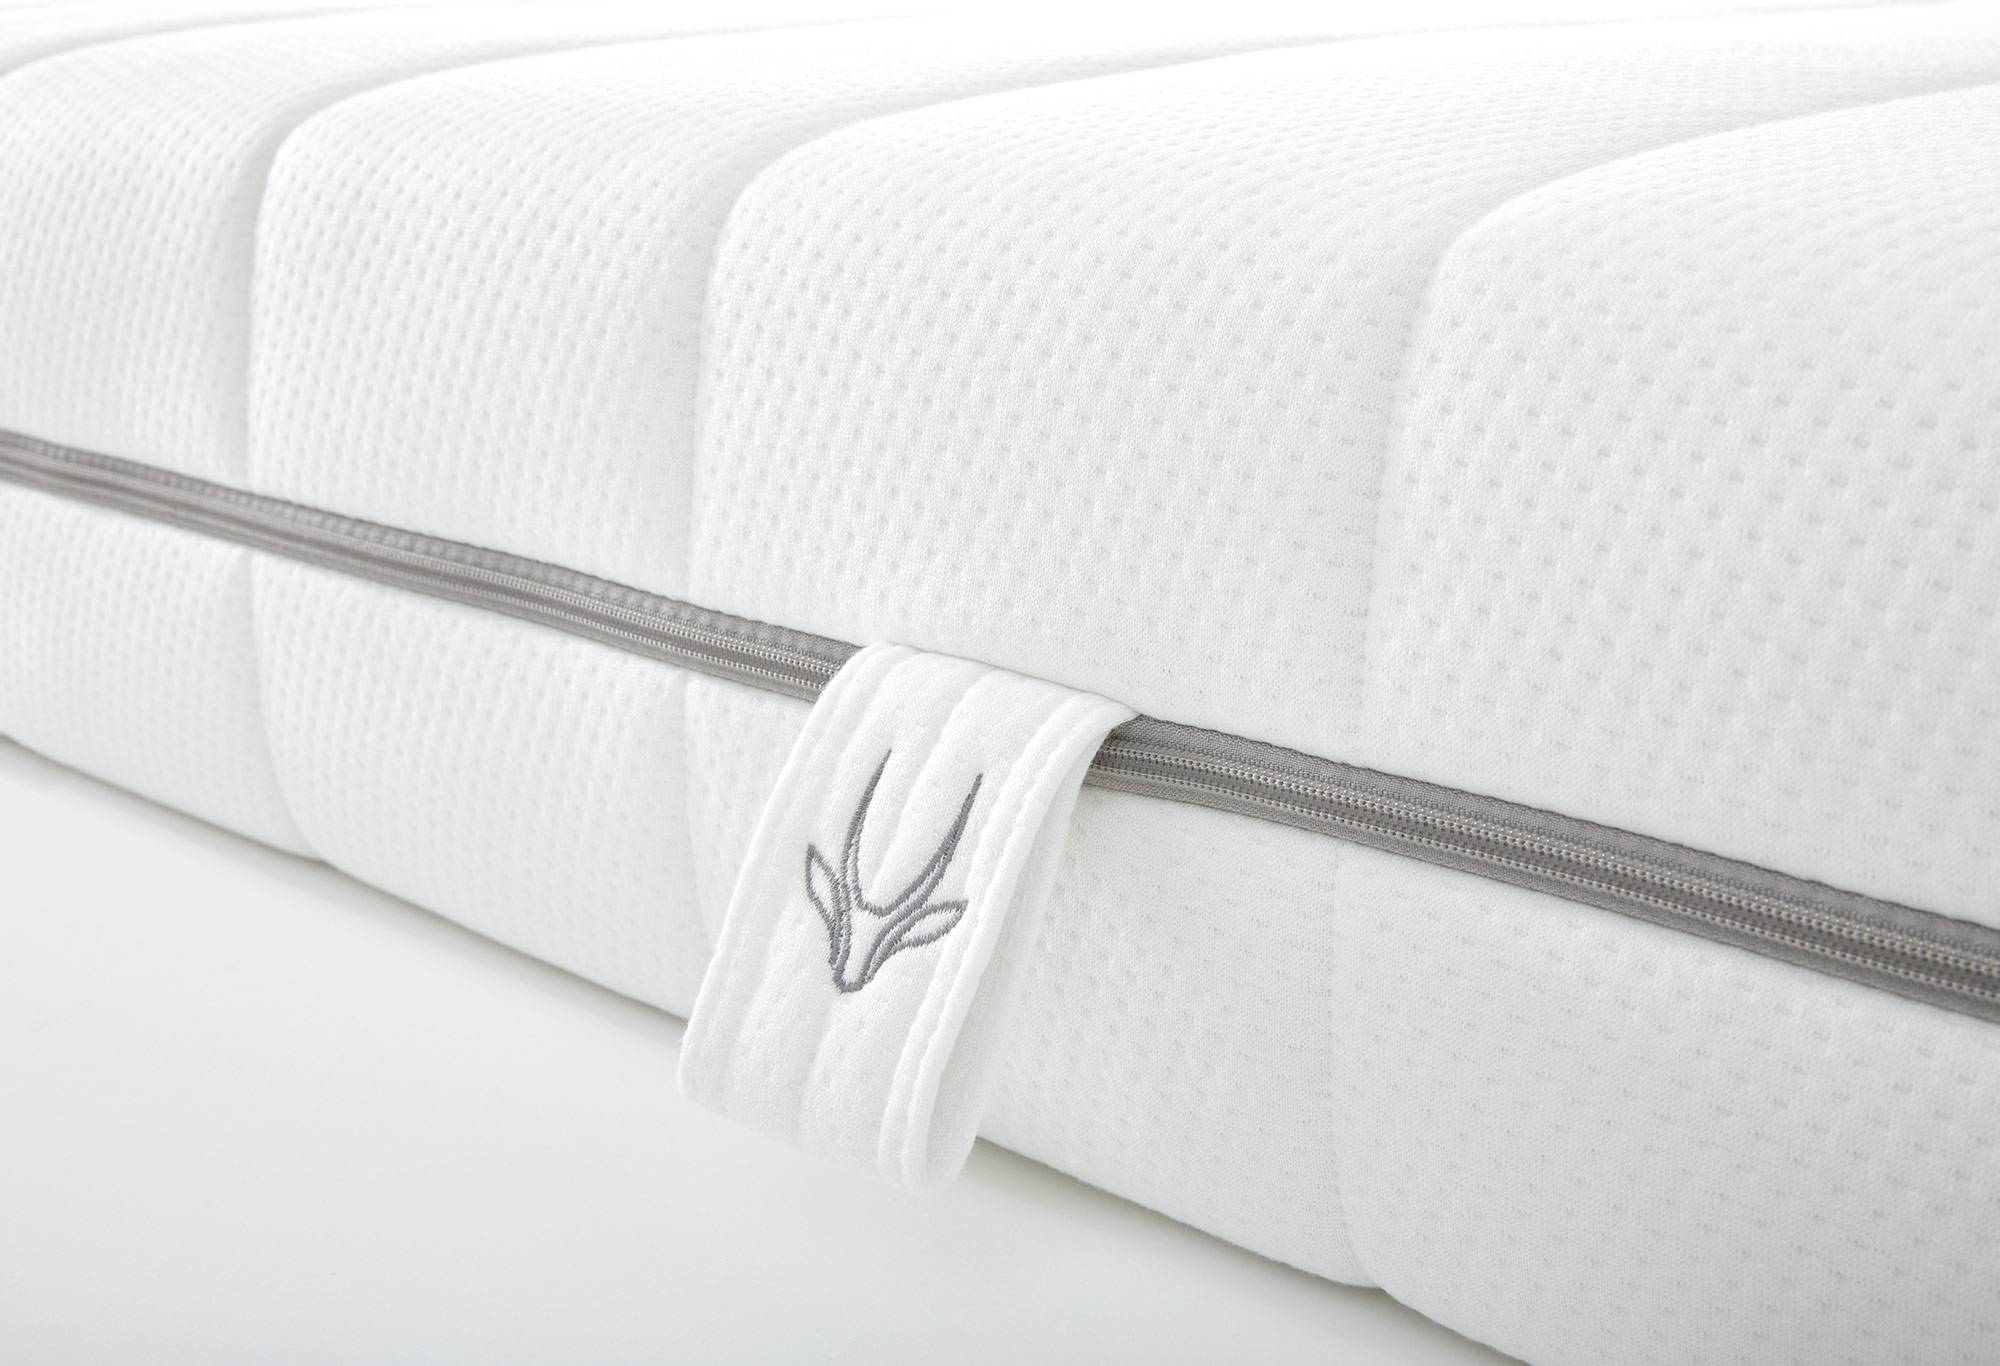 Gazella Breeze I Pocketvering Matras Detail | Swiss Sense